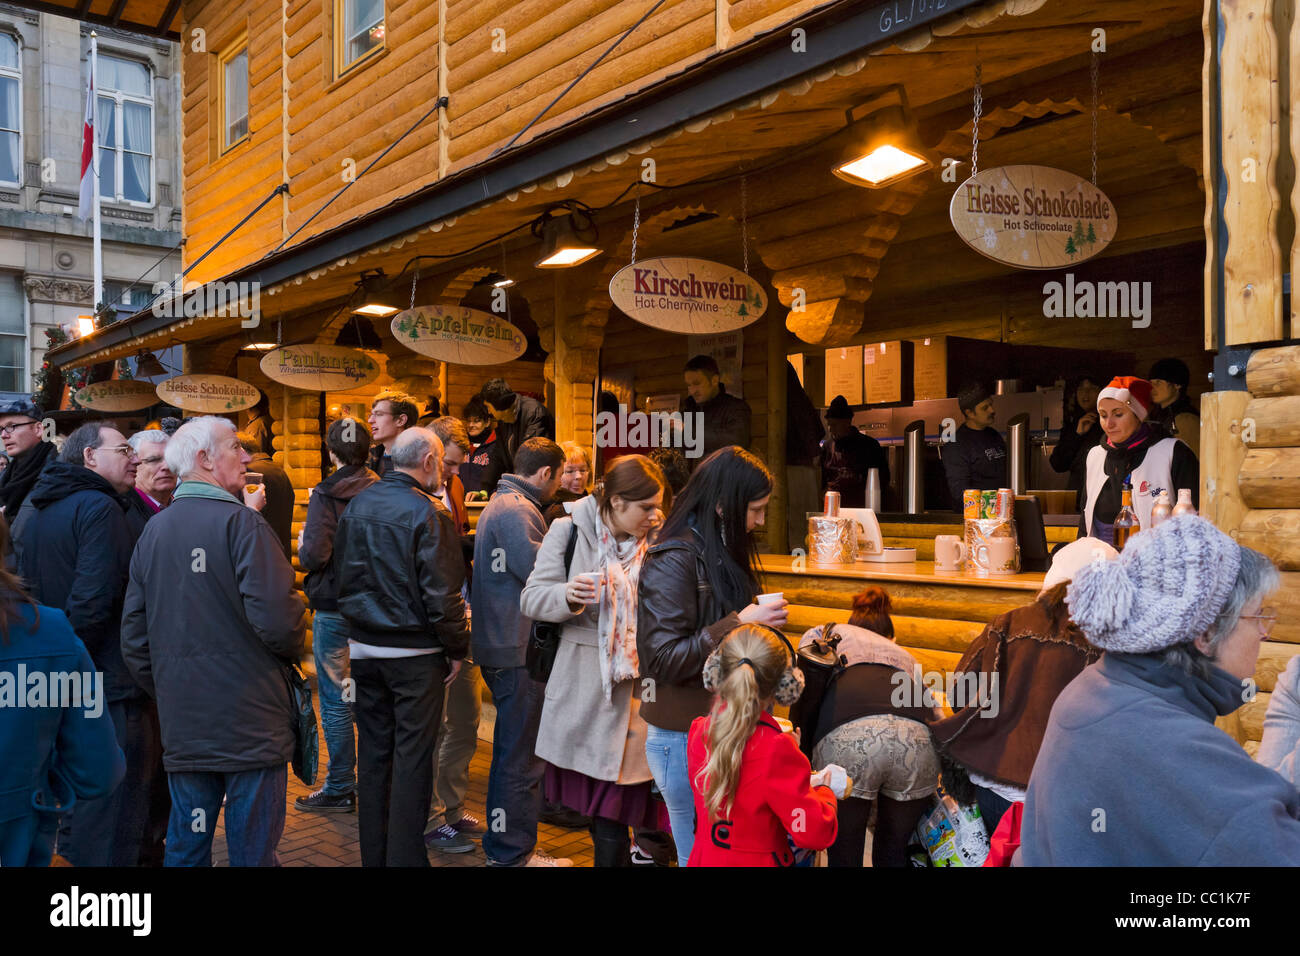 Bar selling seasonal drinks at the Frankfurt German Christmas Market, Victoria Square, Birmingham, UK - Stock Image